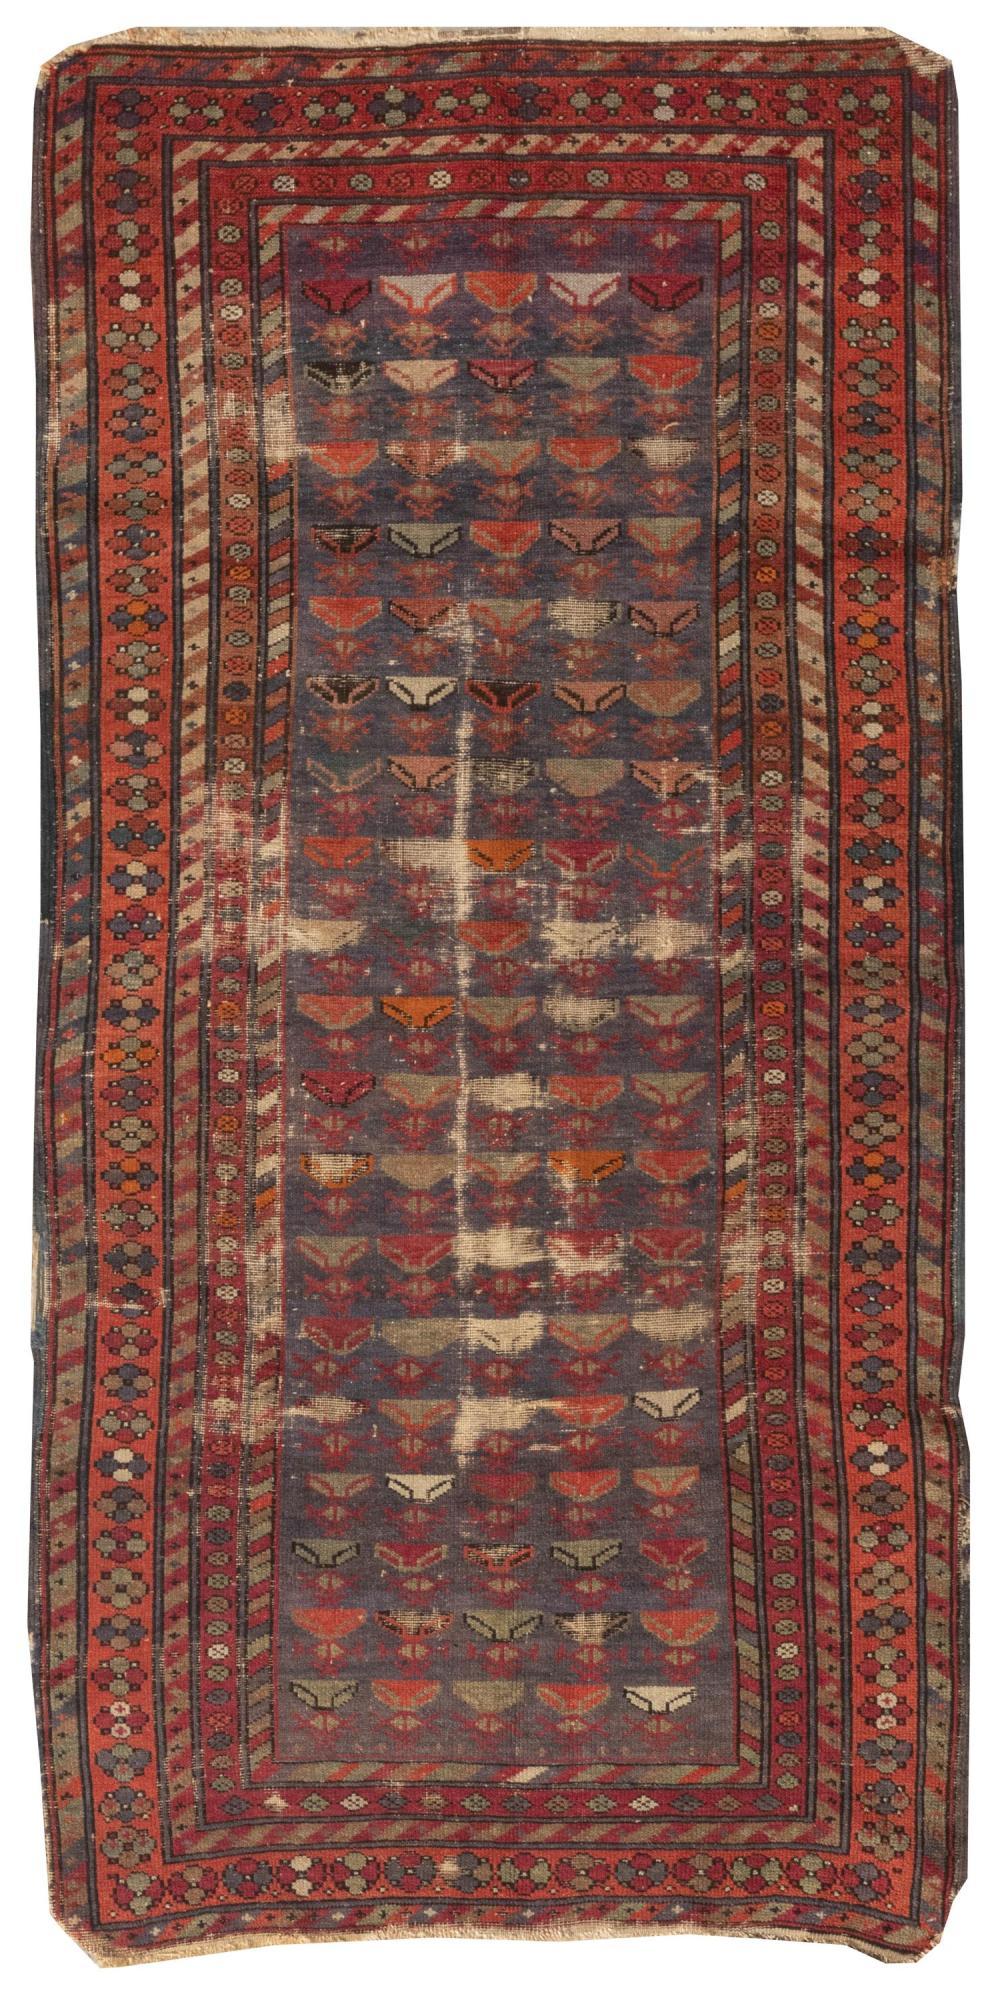 """ORIENTAL RUG: CAUCASIAN 2'10"""" x 5'11"""" Blue-gray field features five columns of a stylized element rendered in dark red, orange, gree."""